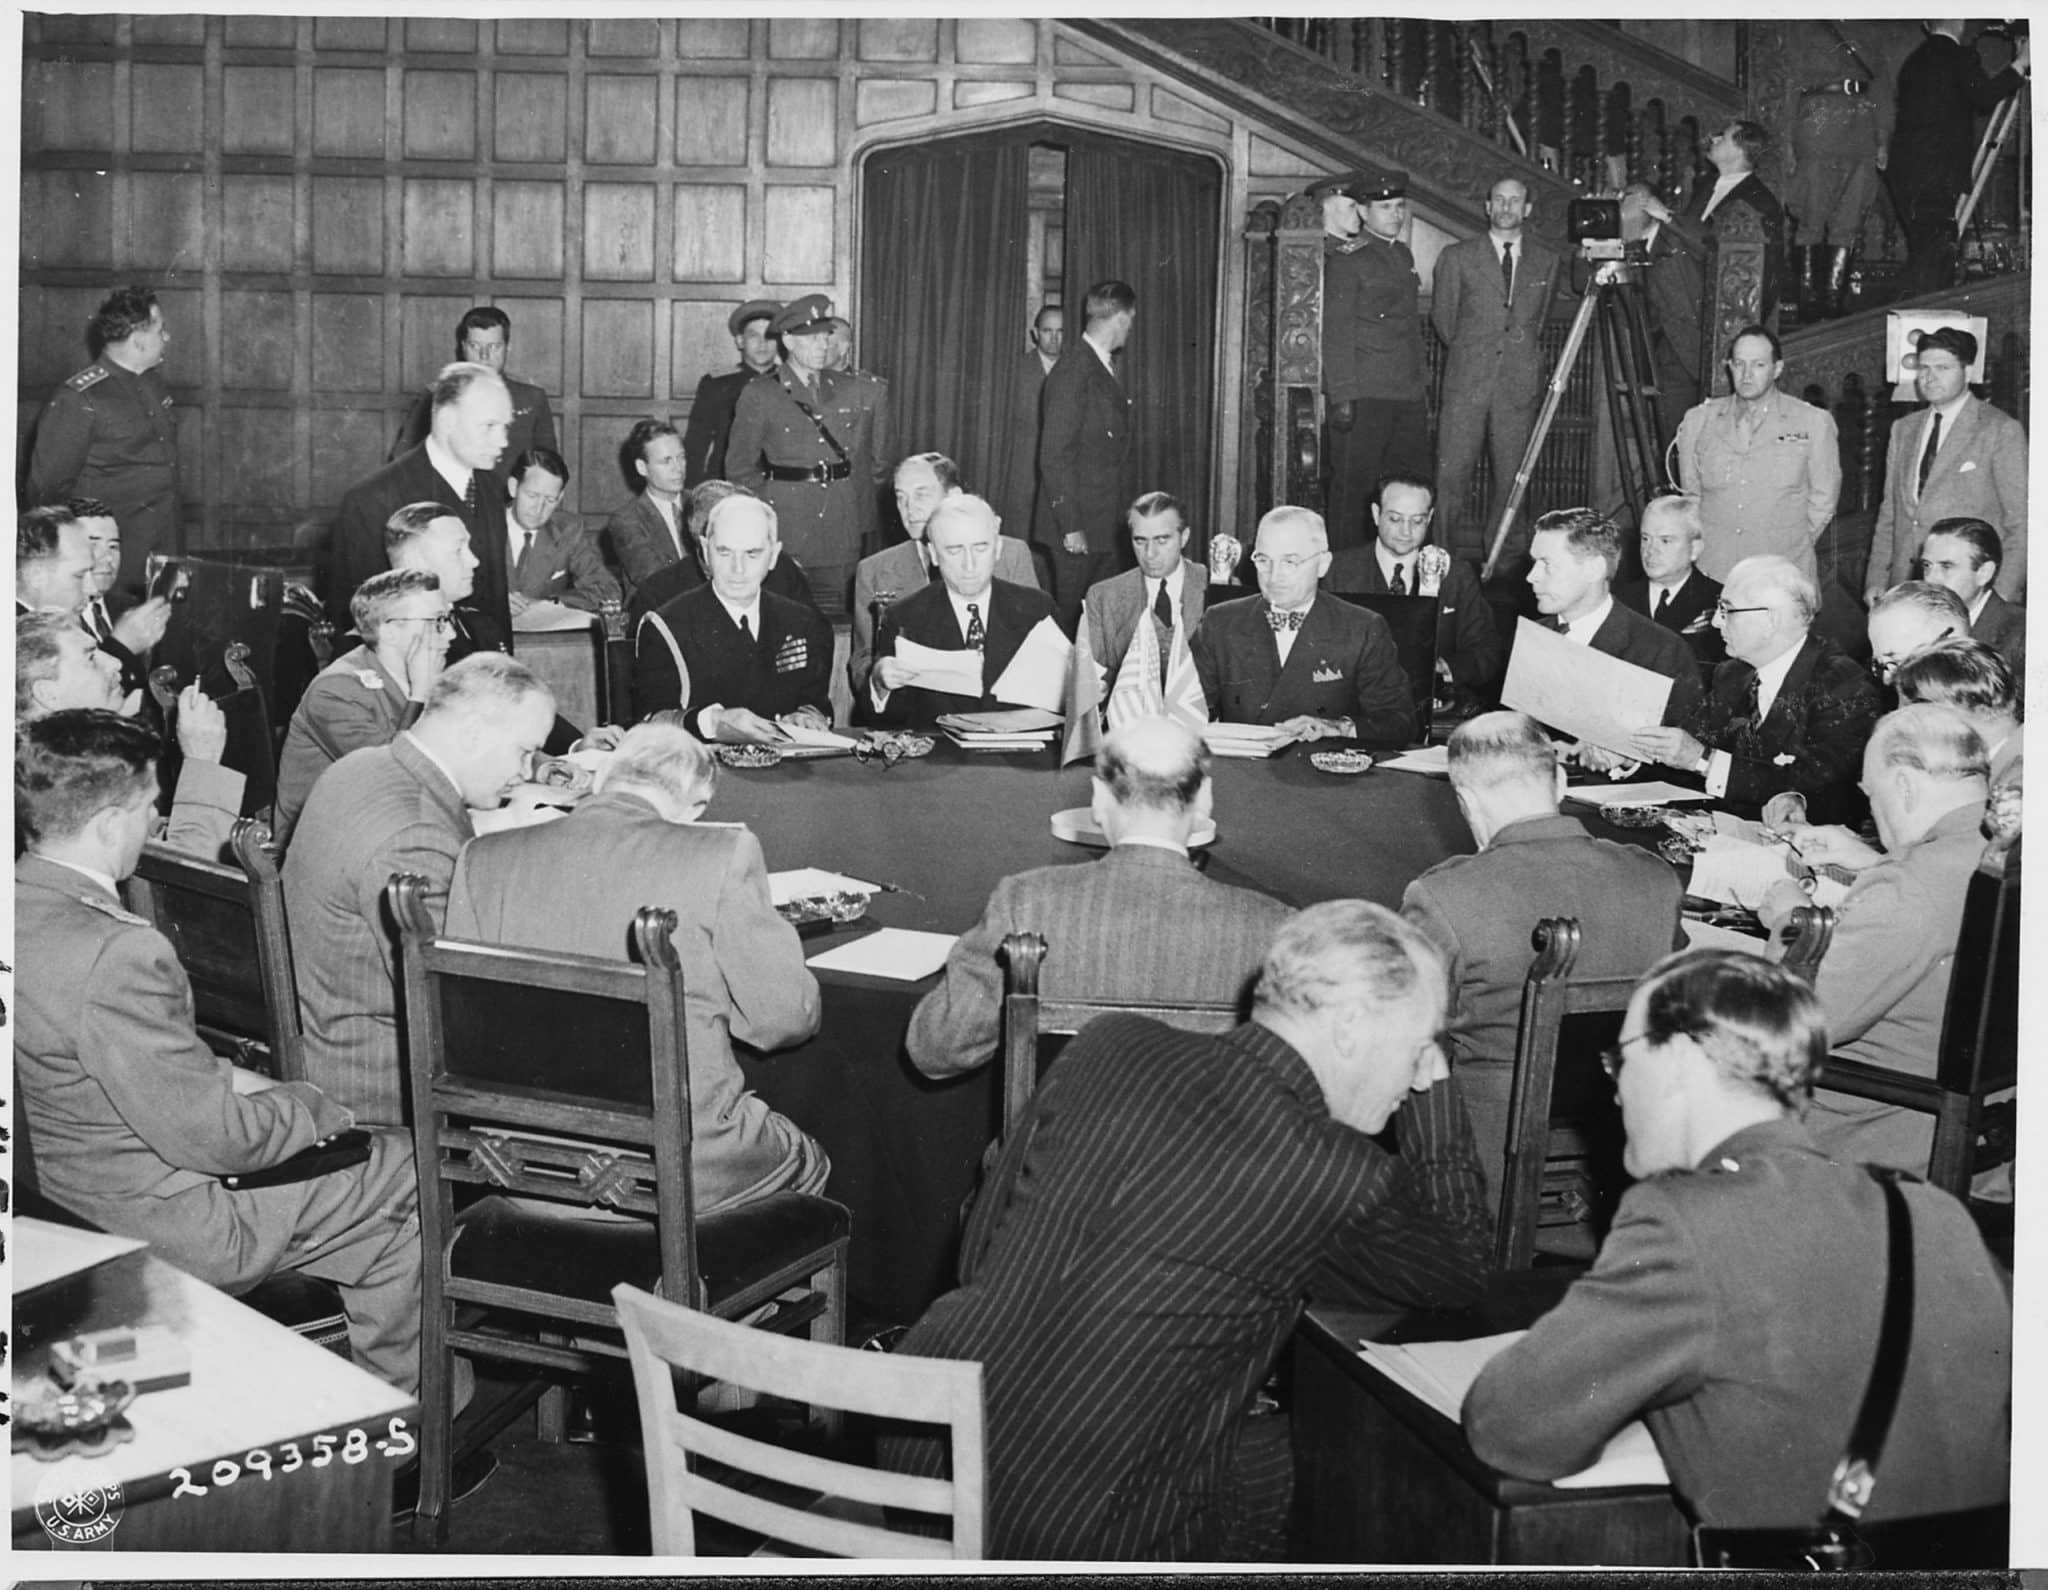 The Potsdam Conference - July 19th 1945 - Tensions would flare at the third plenary session on July 19th 1945